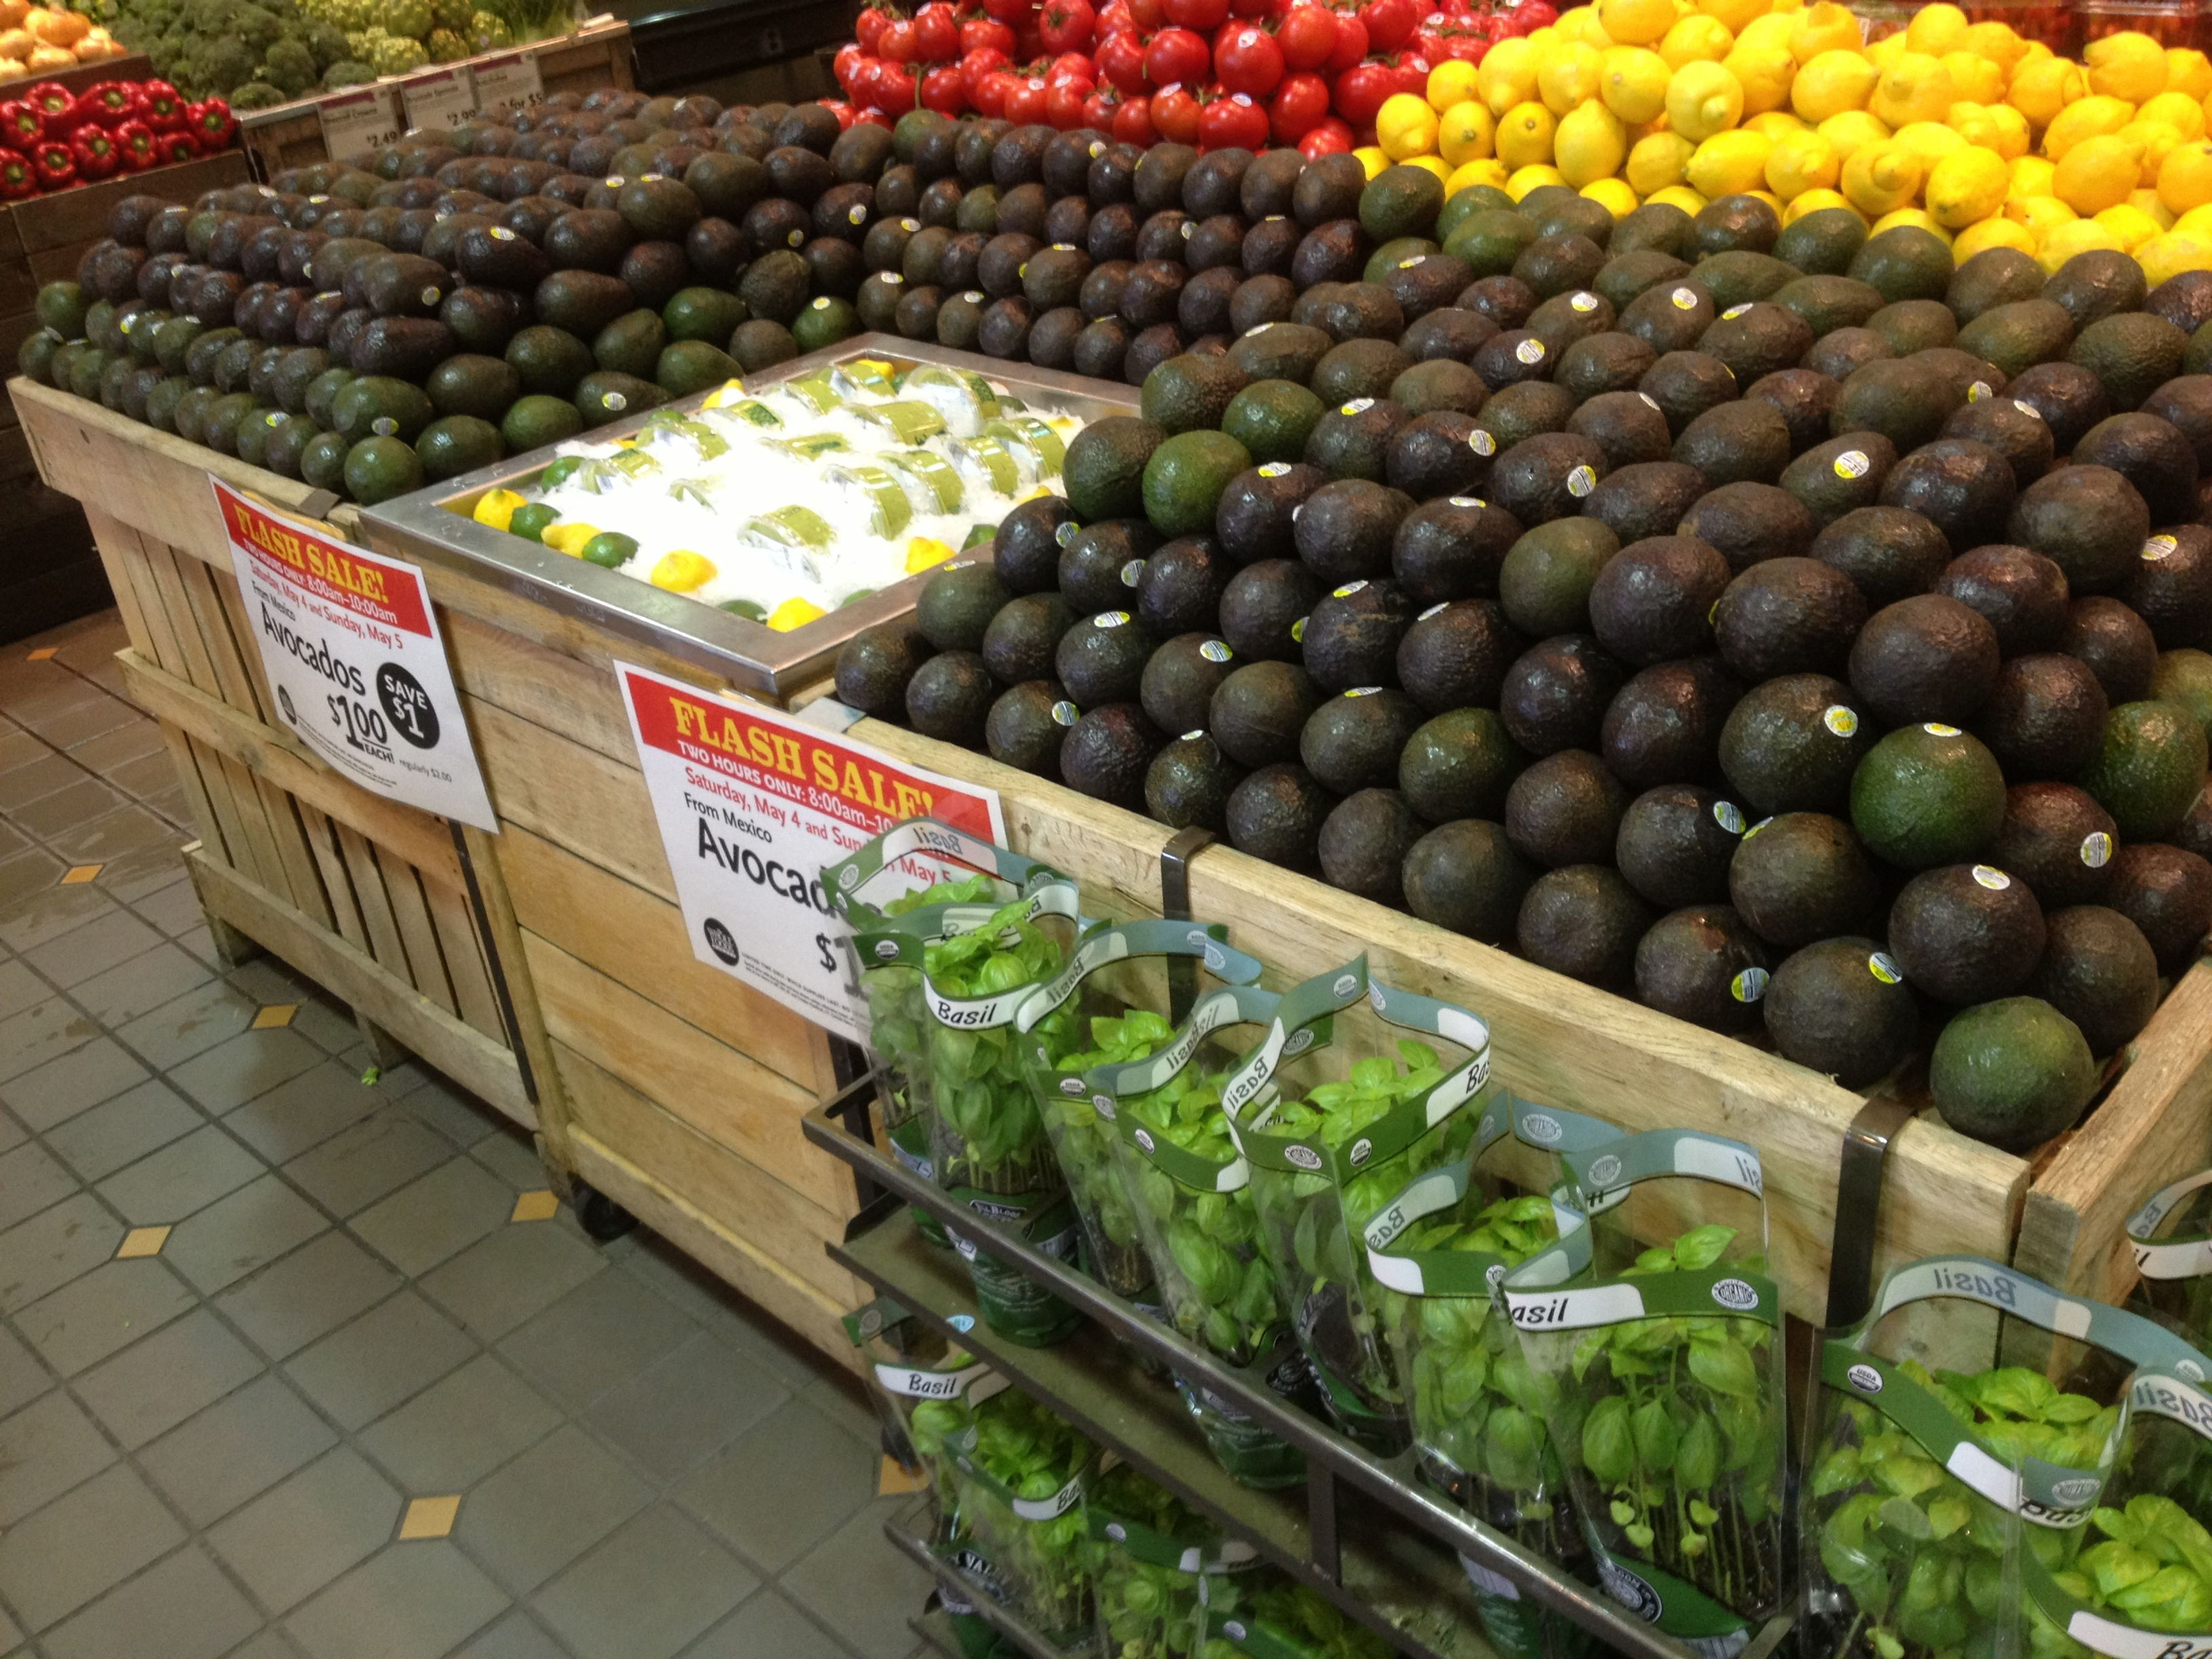 Whole foods produce department Fruit and vegetable